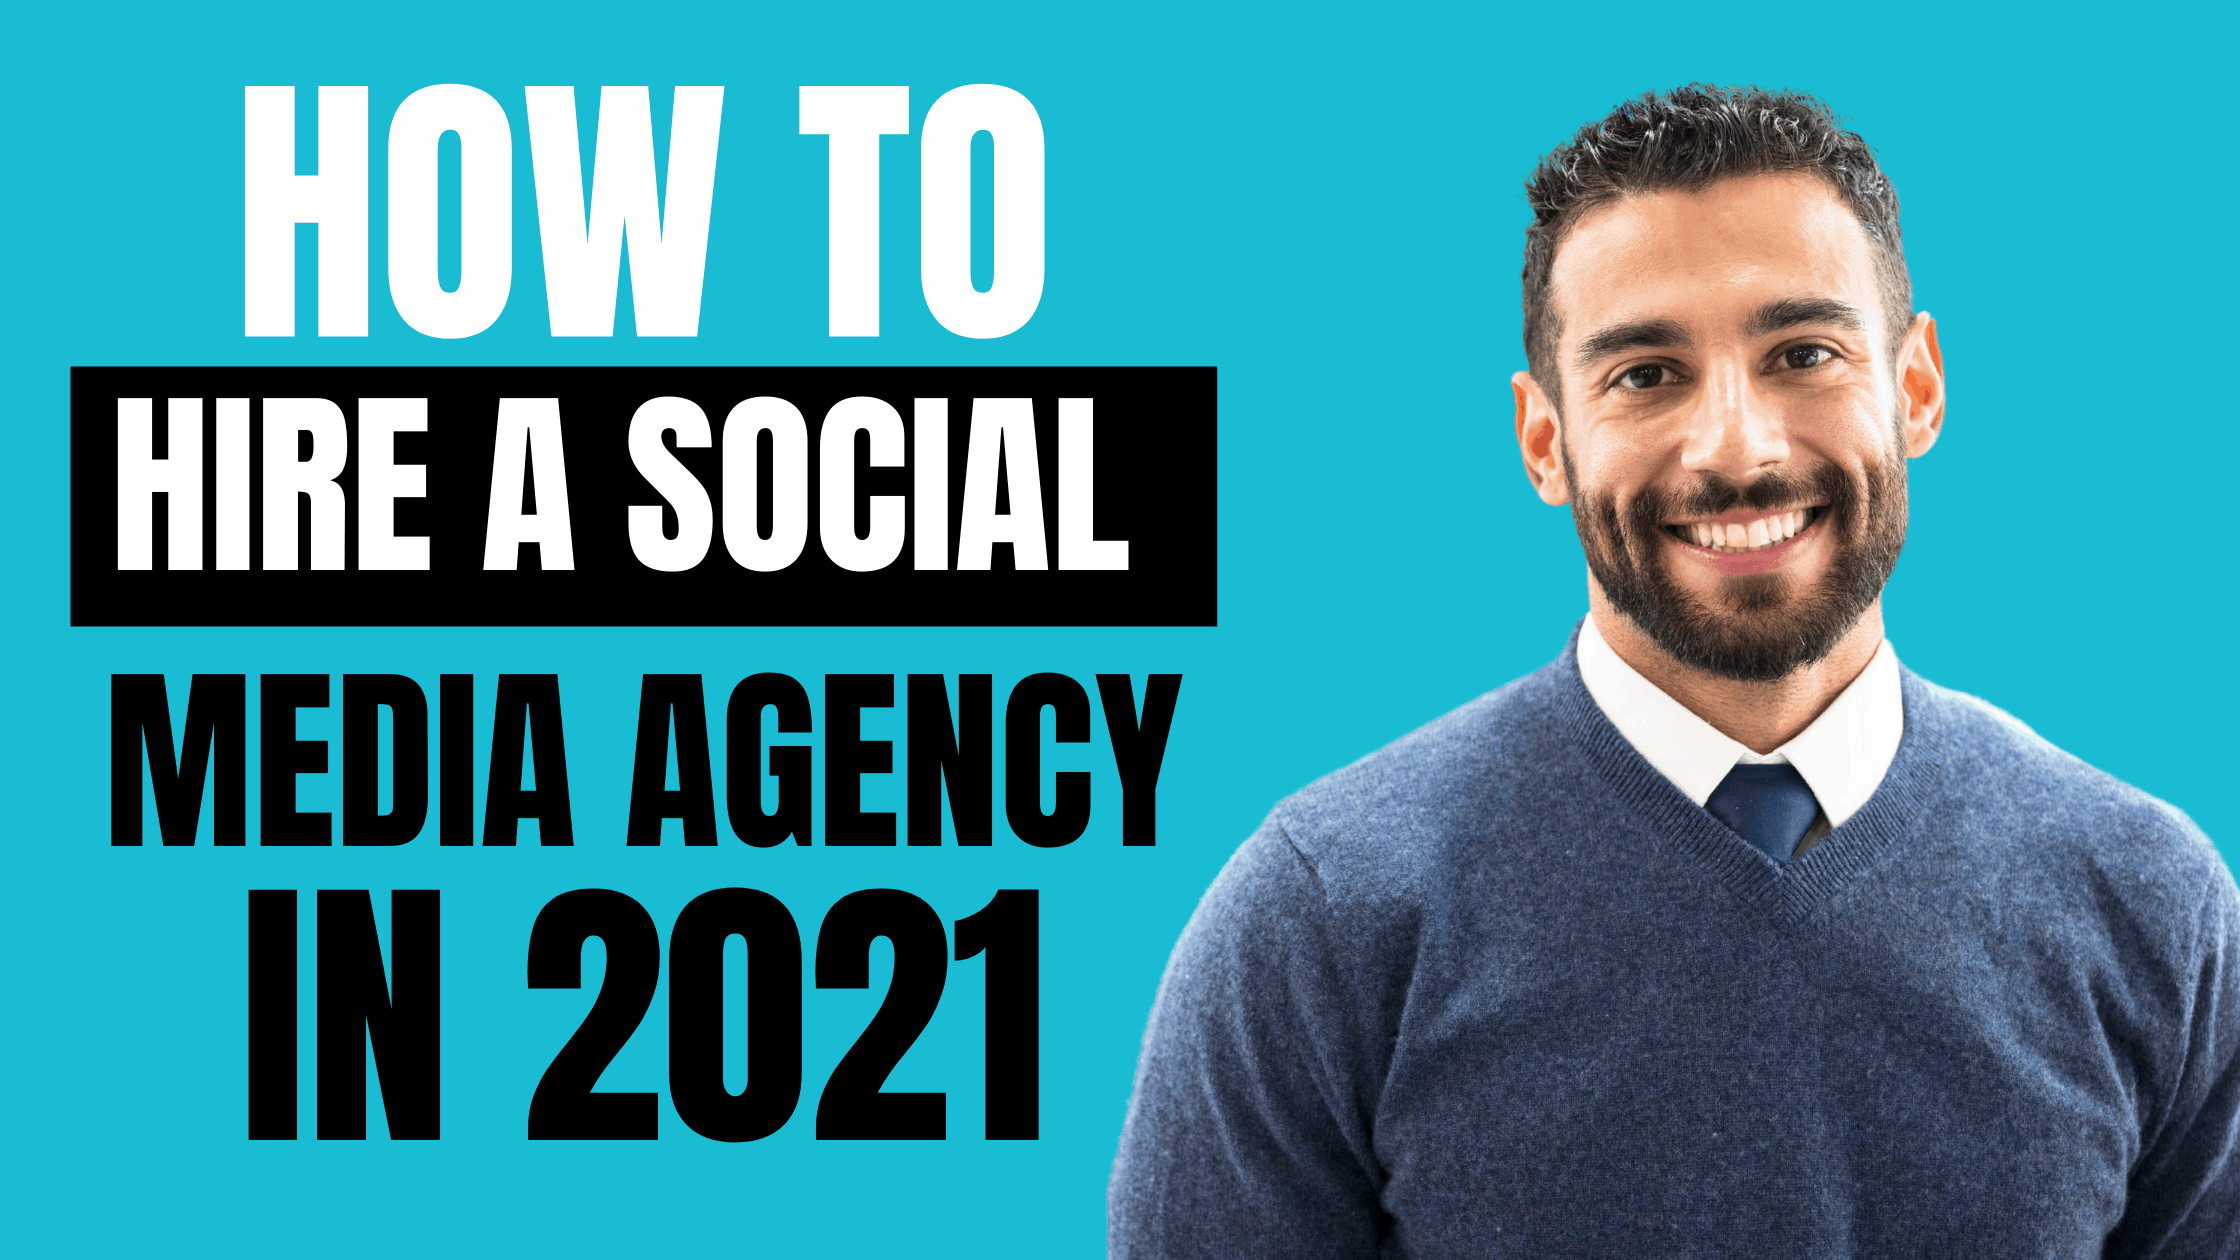 how to hire a social media agency in 2021